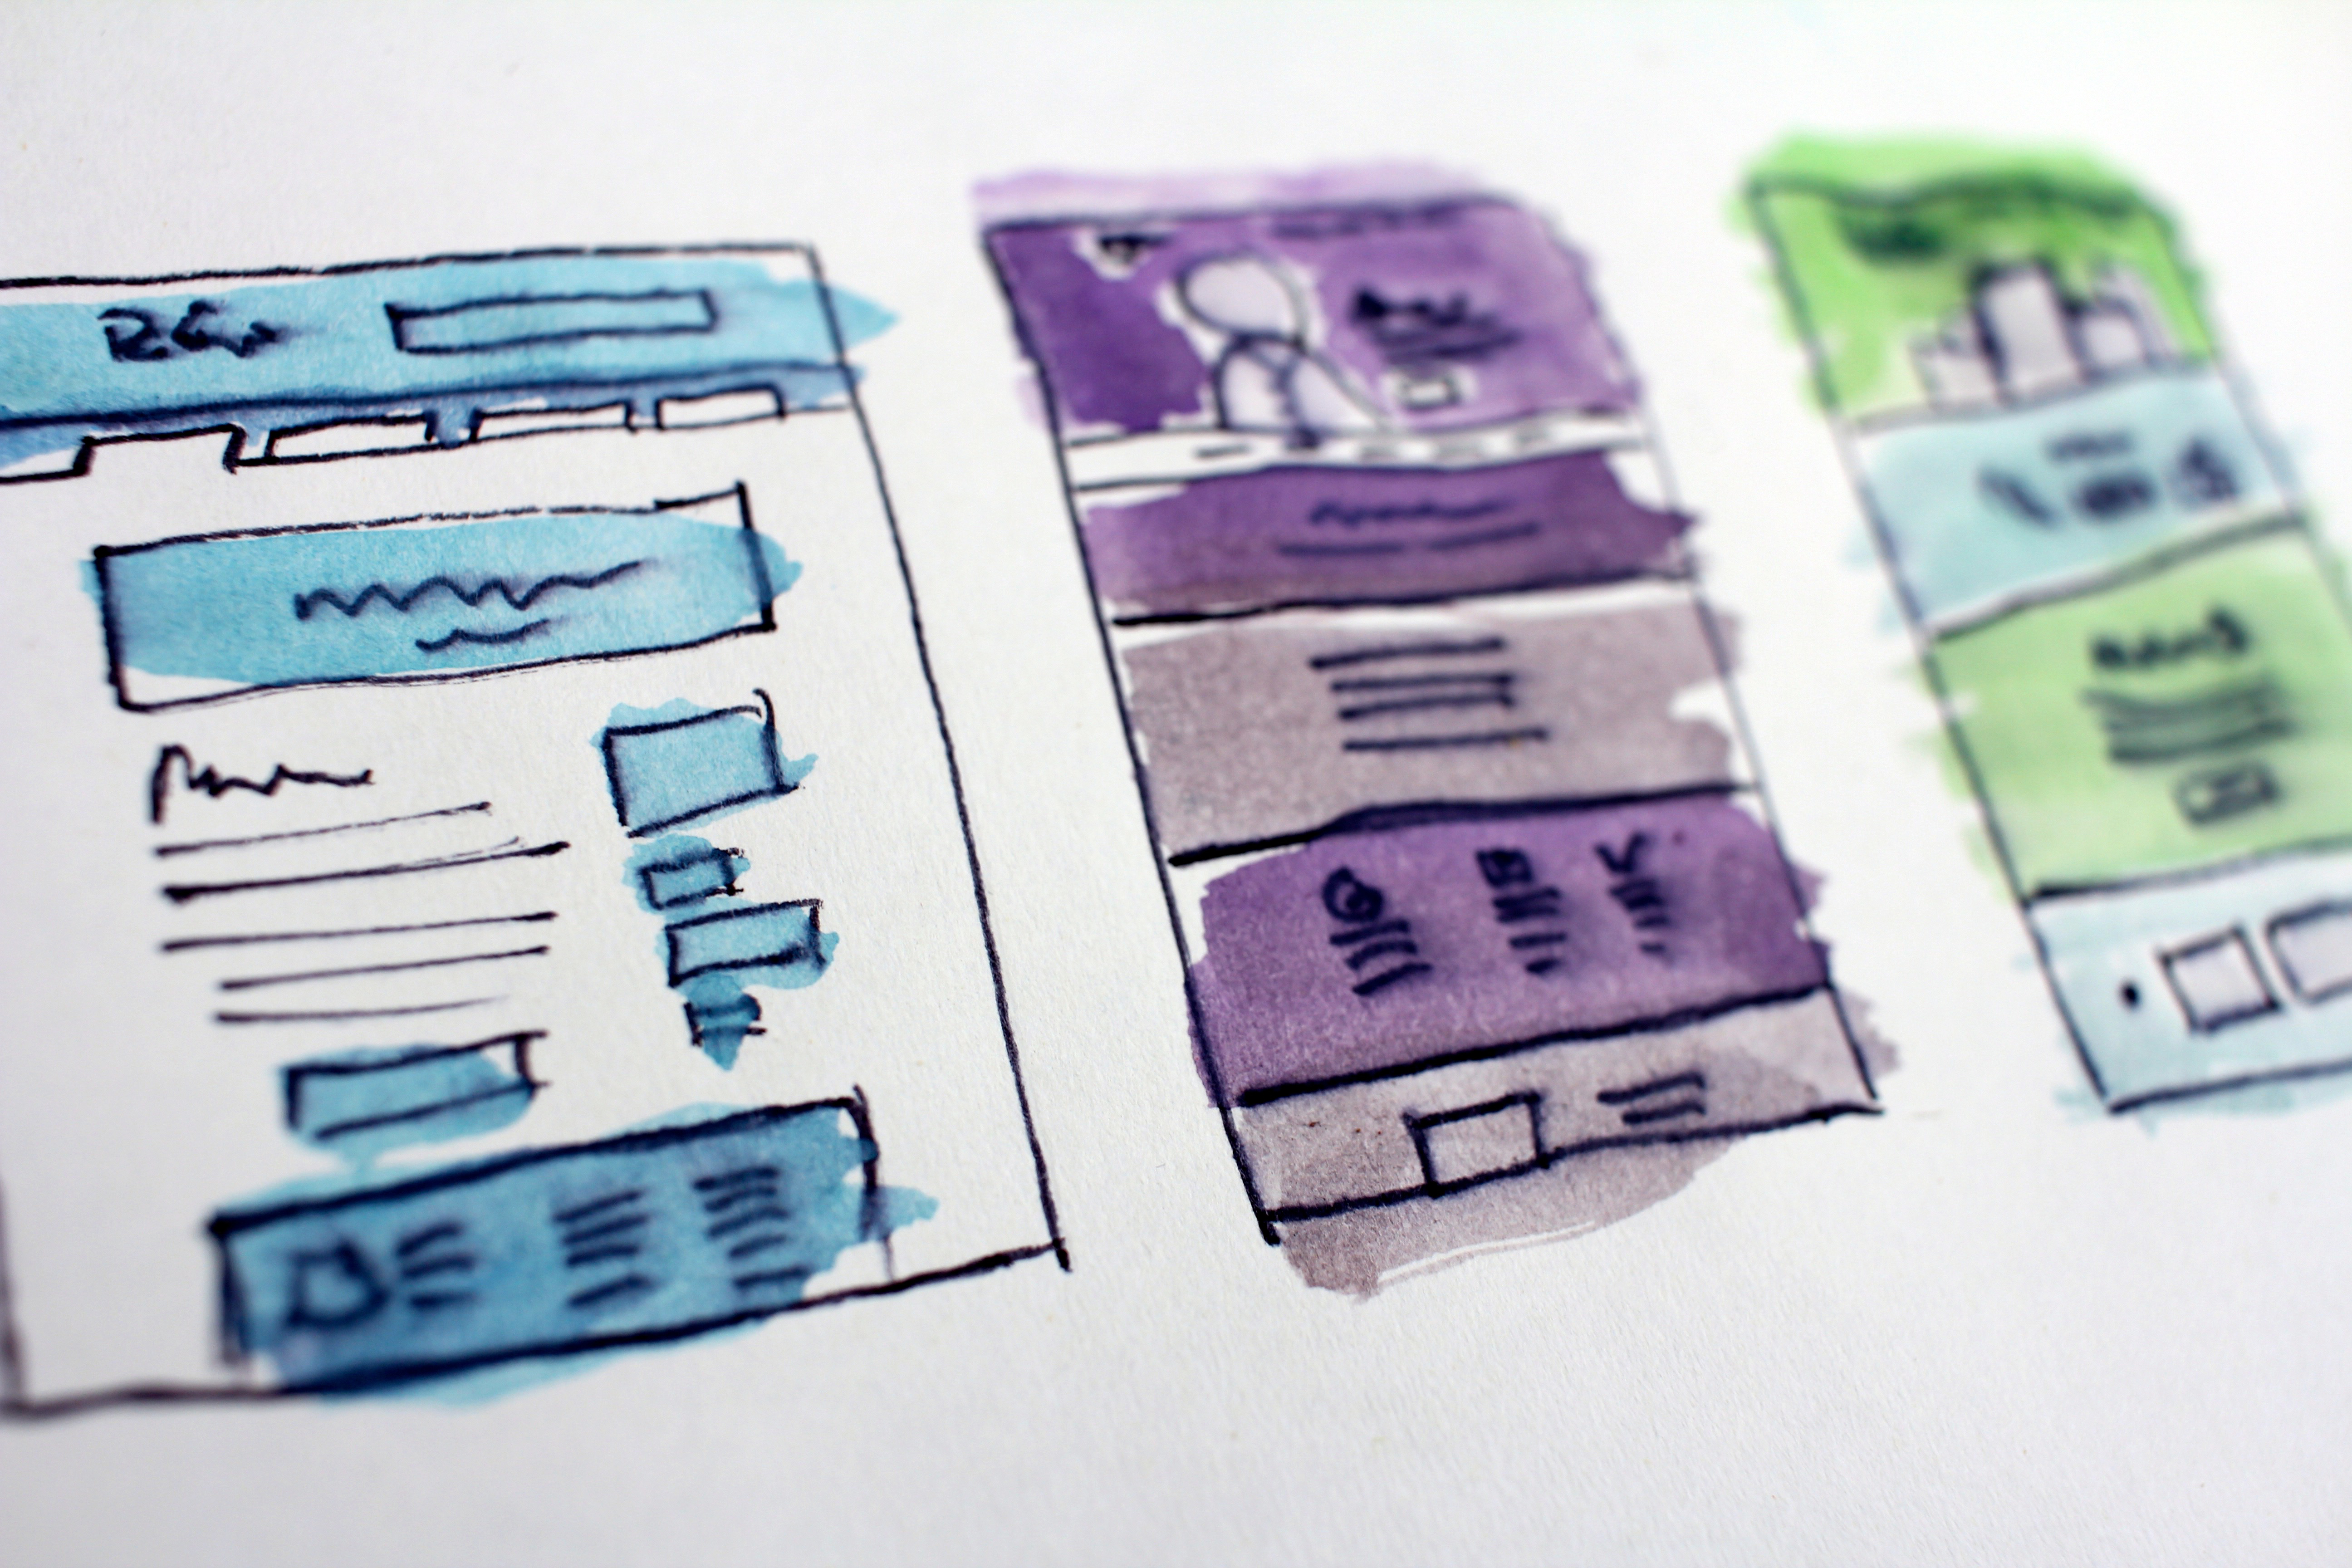 lemlist weekly #8 - New Design and UX